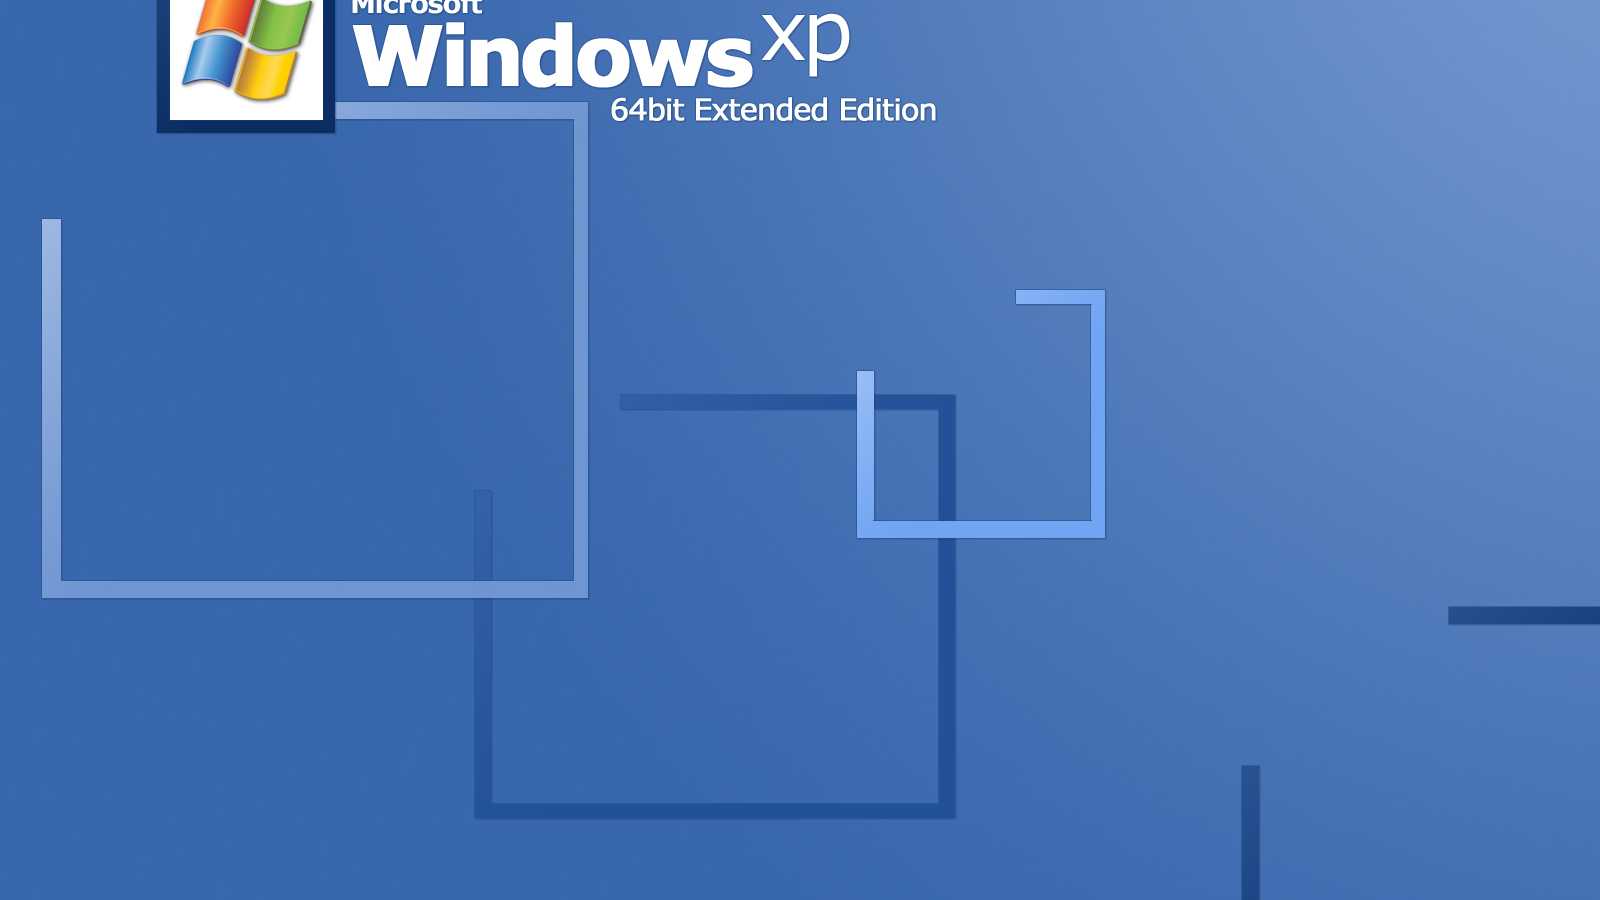 Free Download Windows Xp 64 Bit Wallpaper 10 10 From 59 Votes